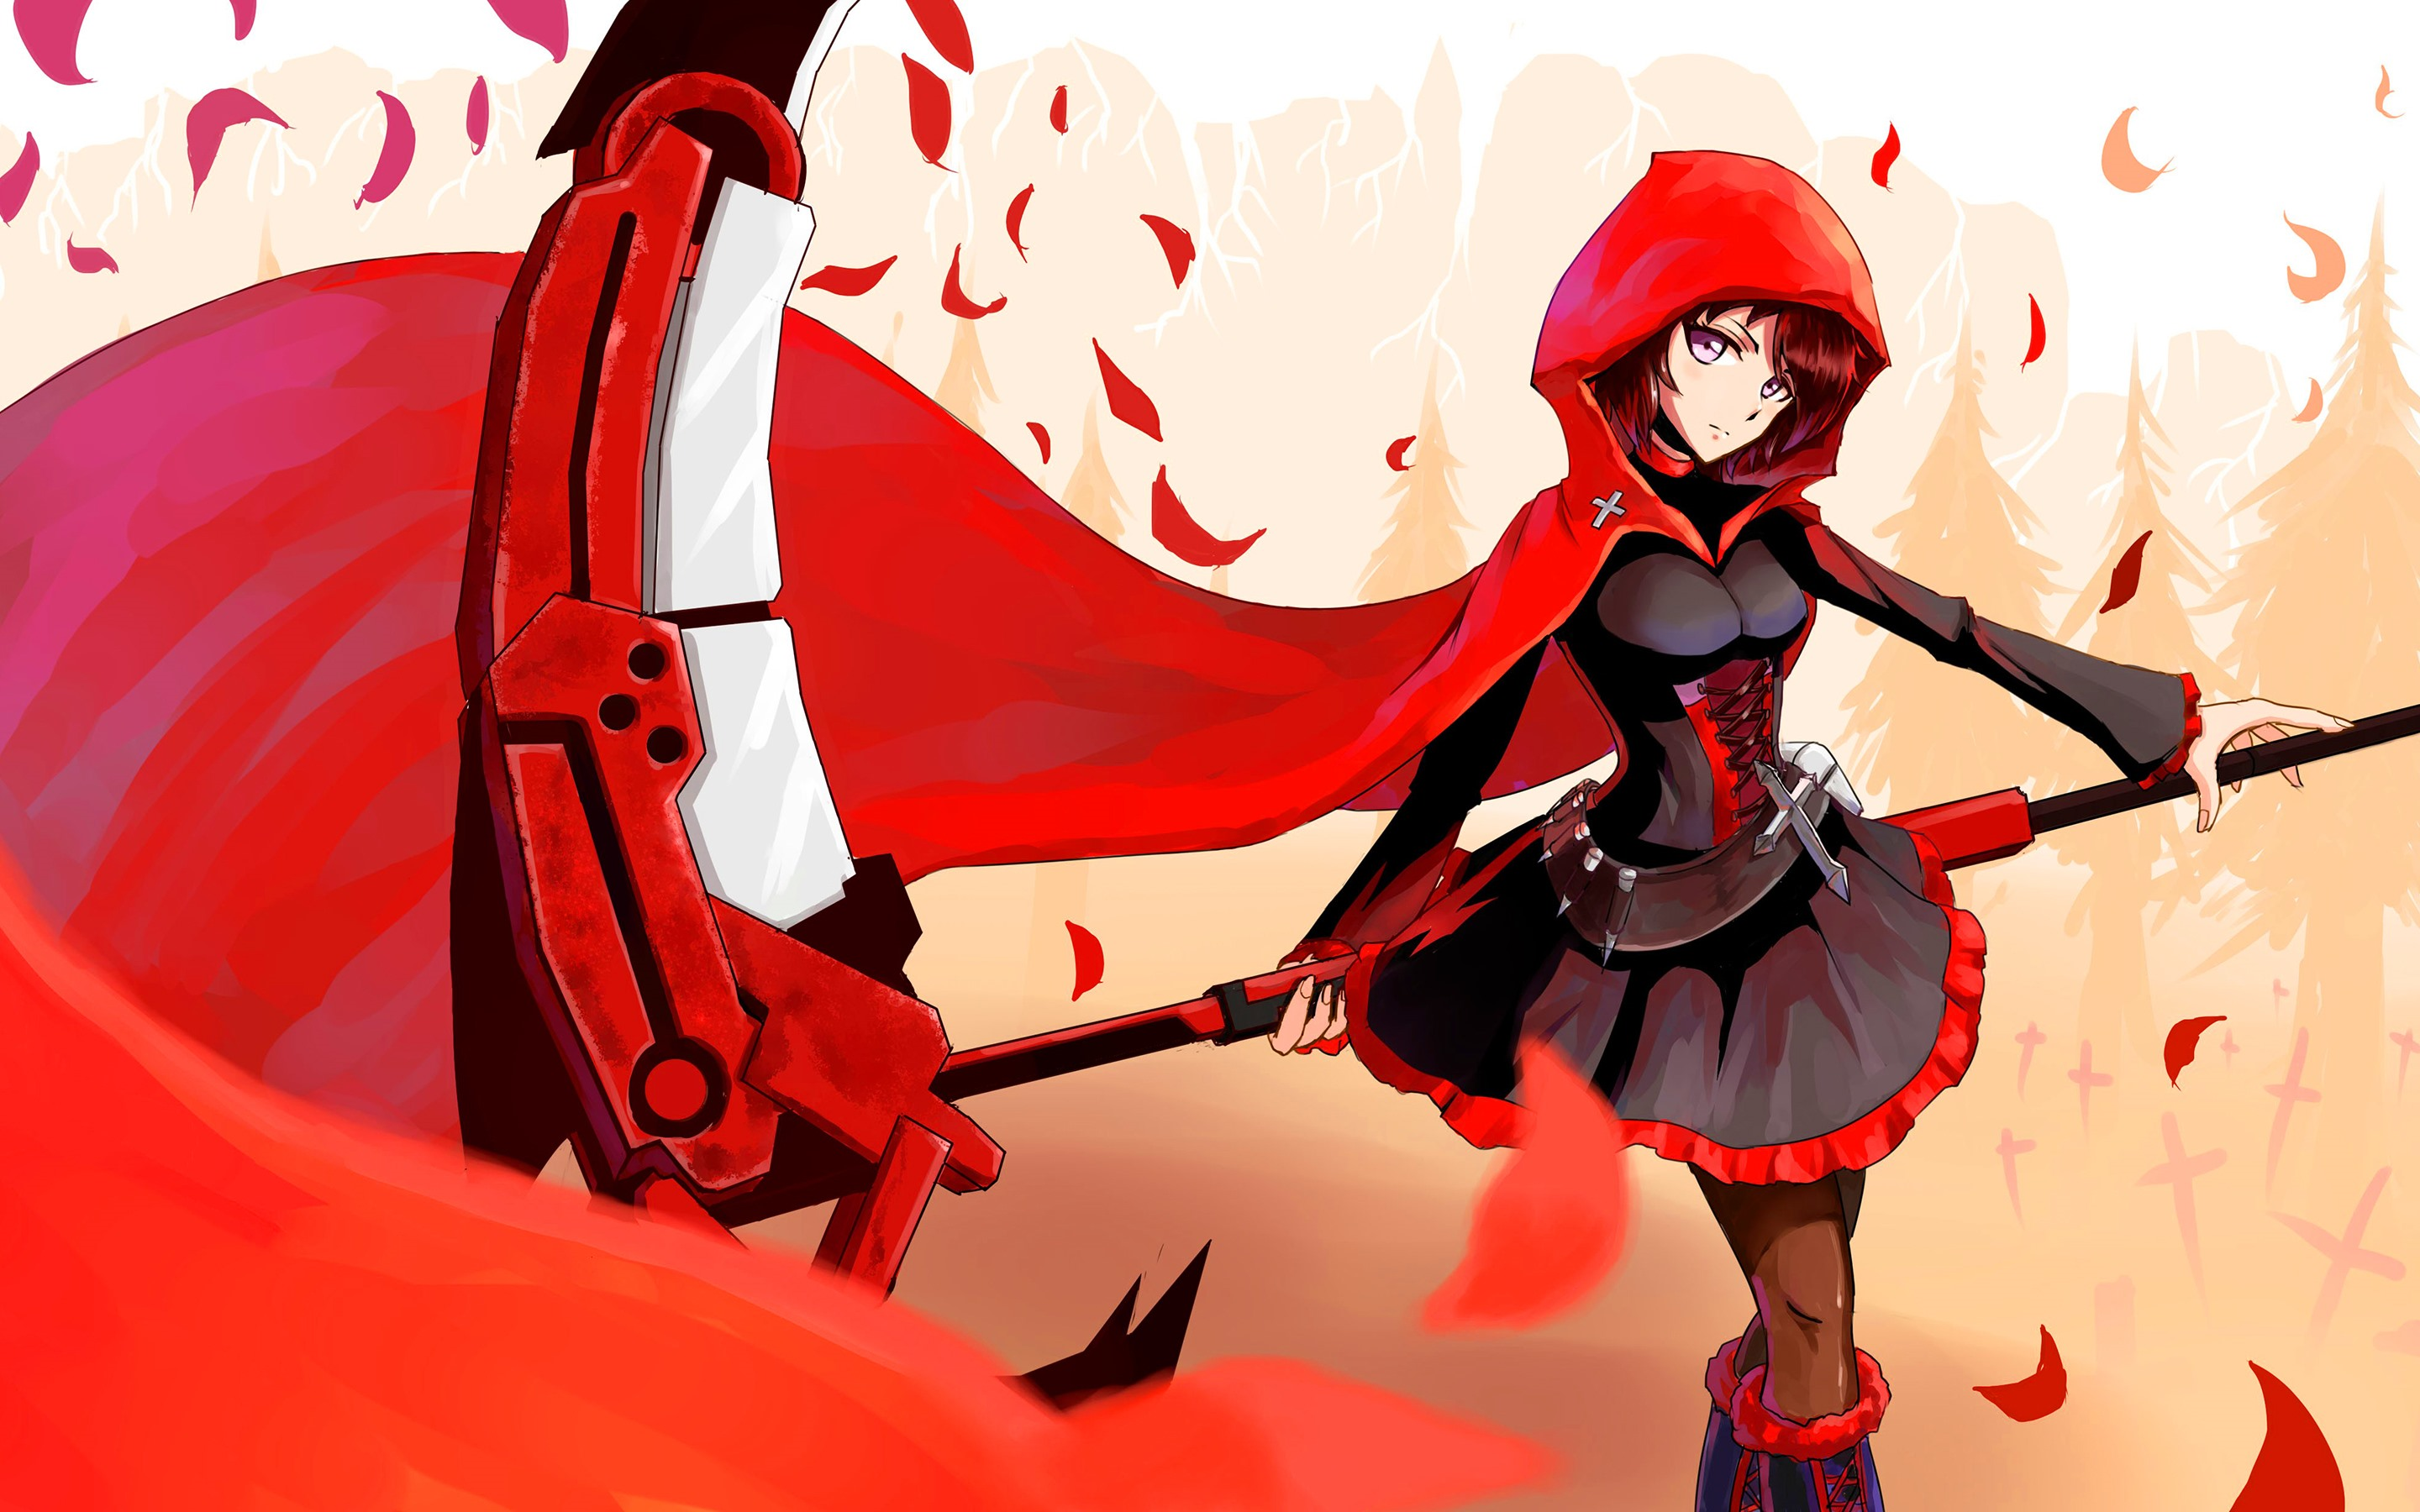 Wallpaper Little Red Riding Hood Anime Girl 2880x1800 Hd Picture Image